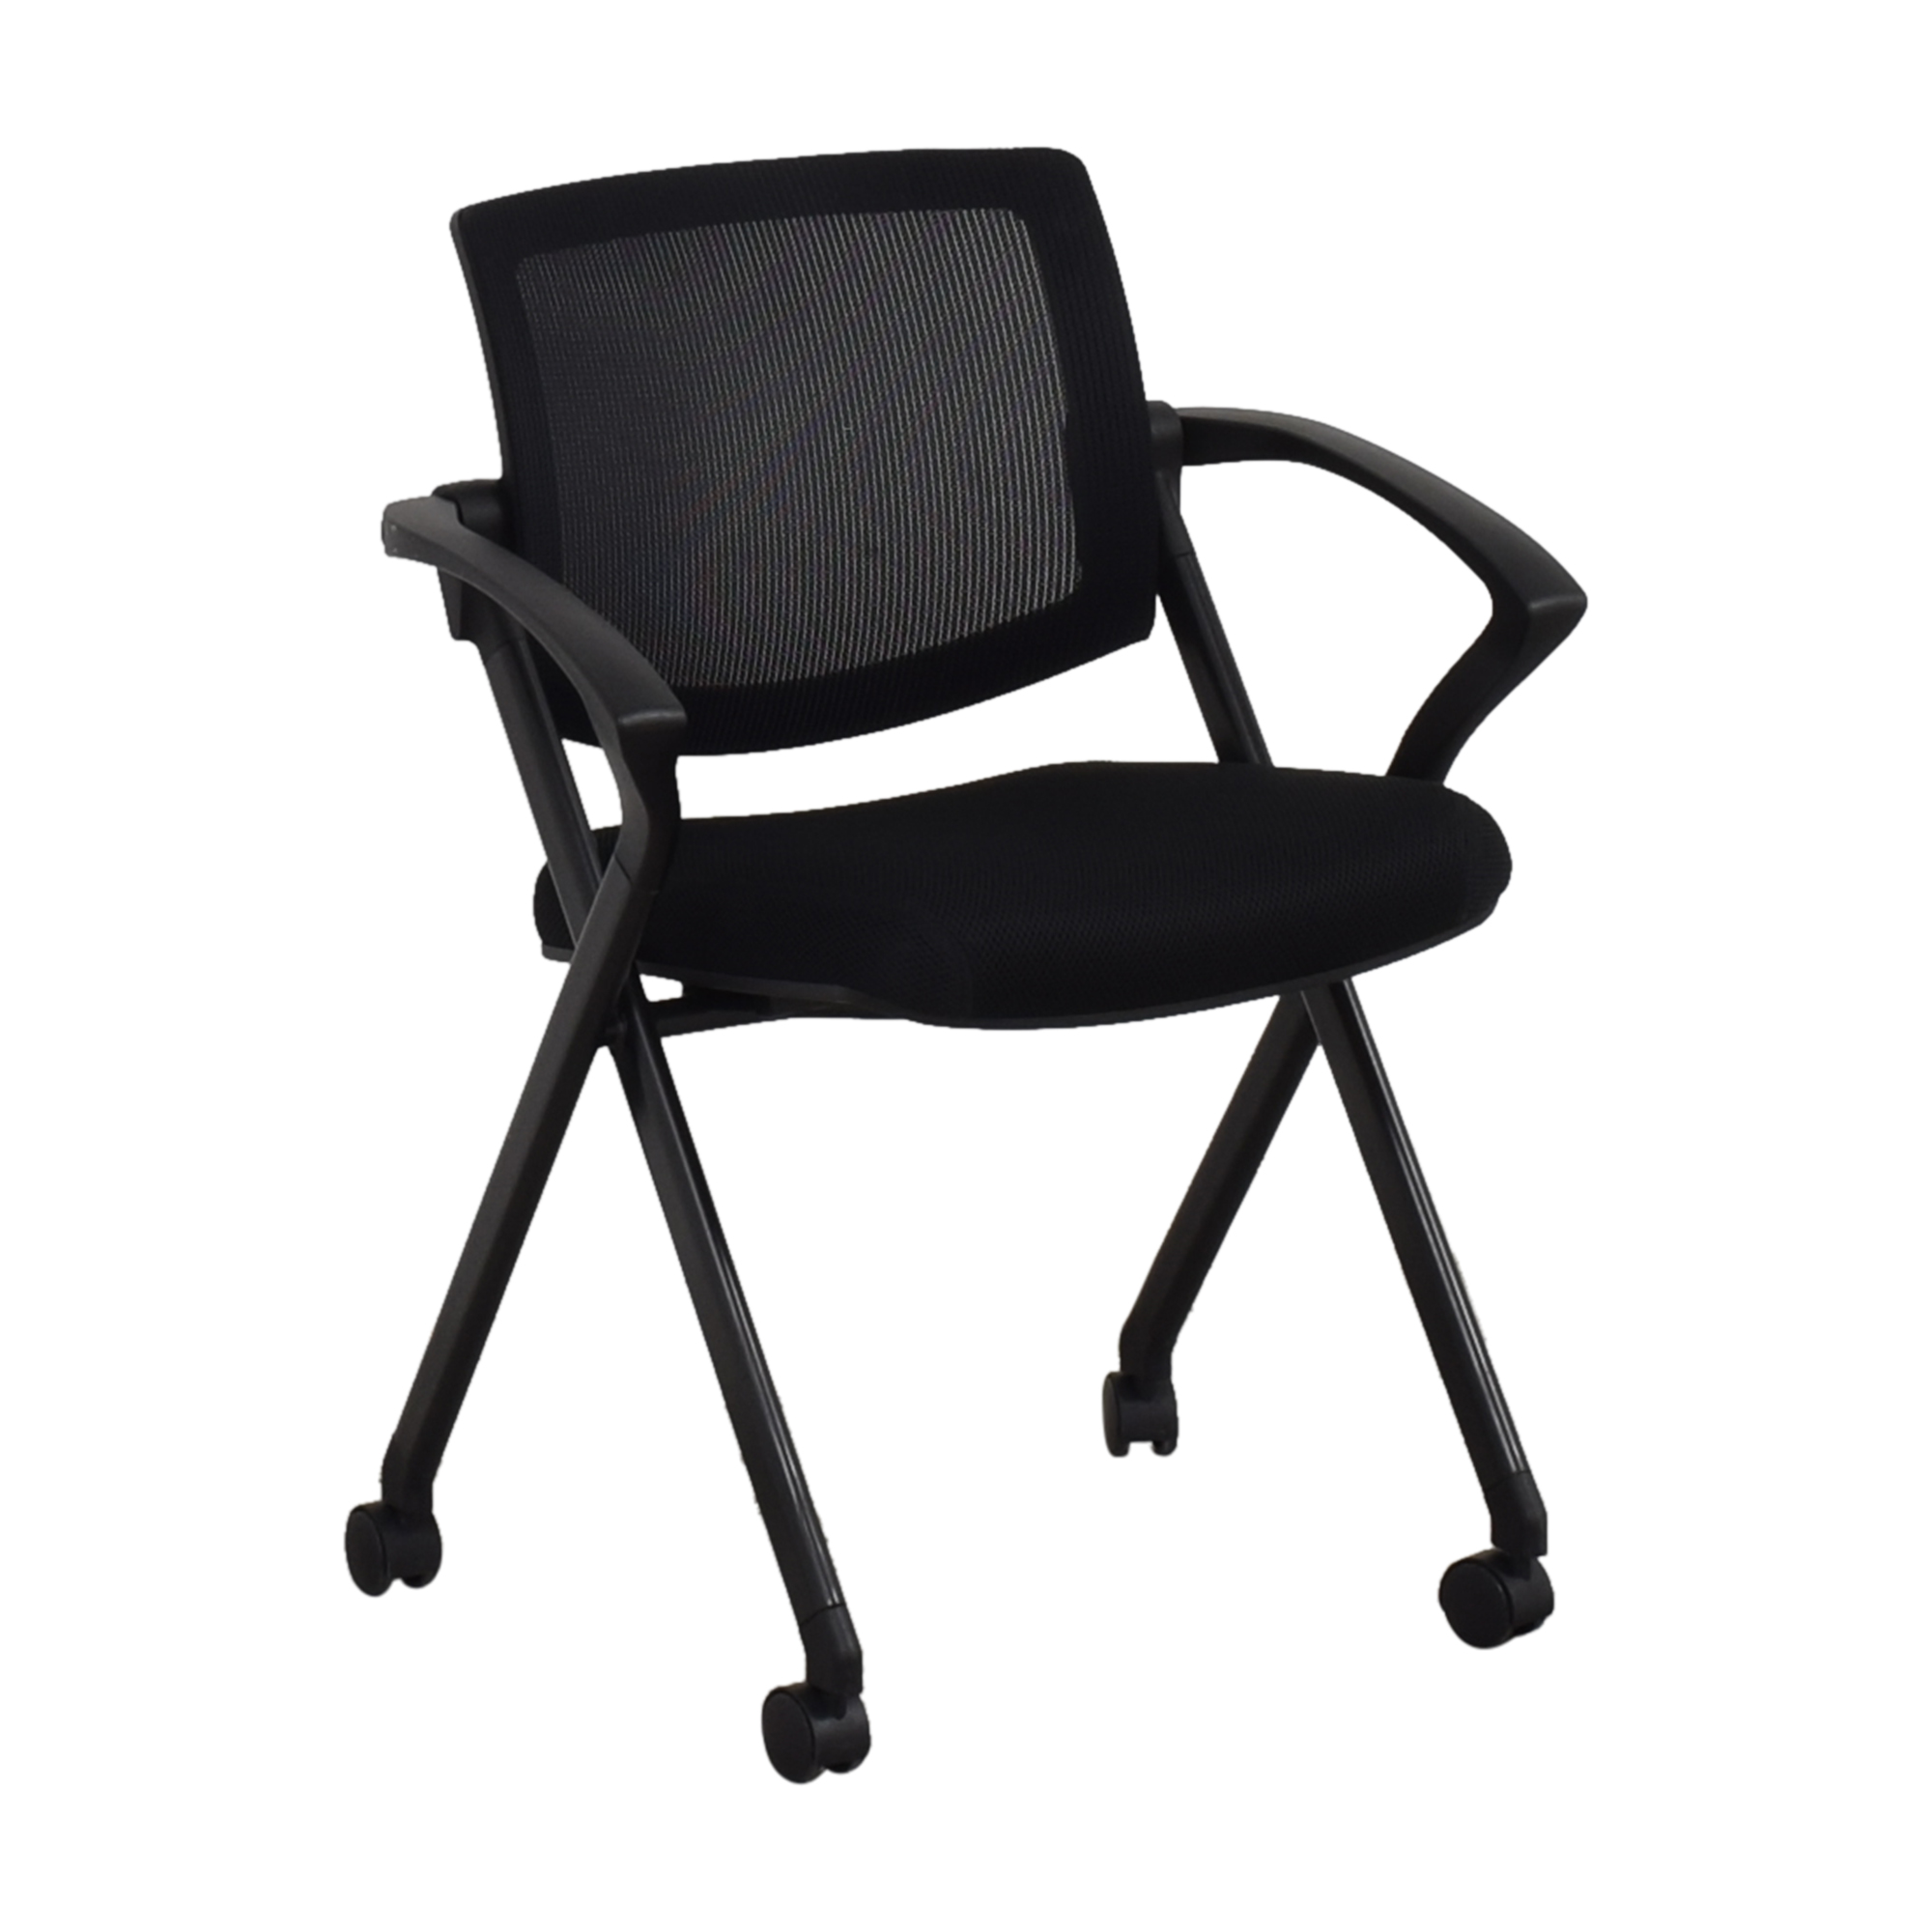 Offices to Go Offices to Go Mesh Back Flip Seat Nesting Chair on sale